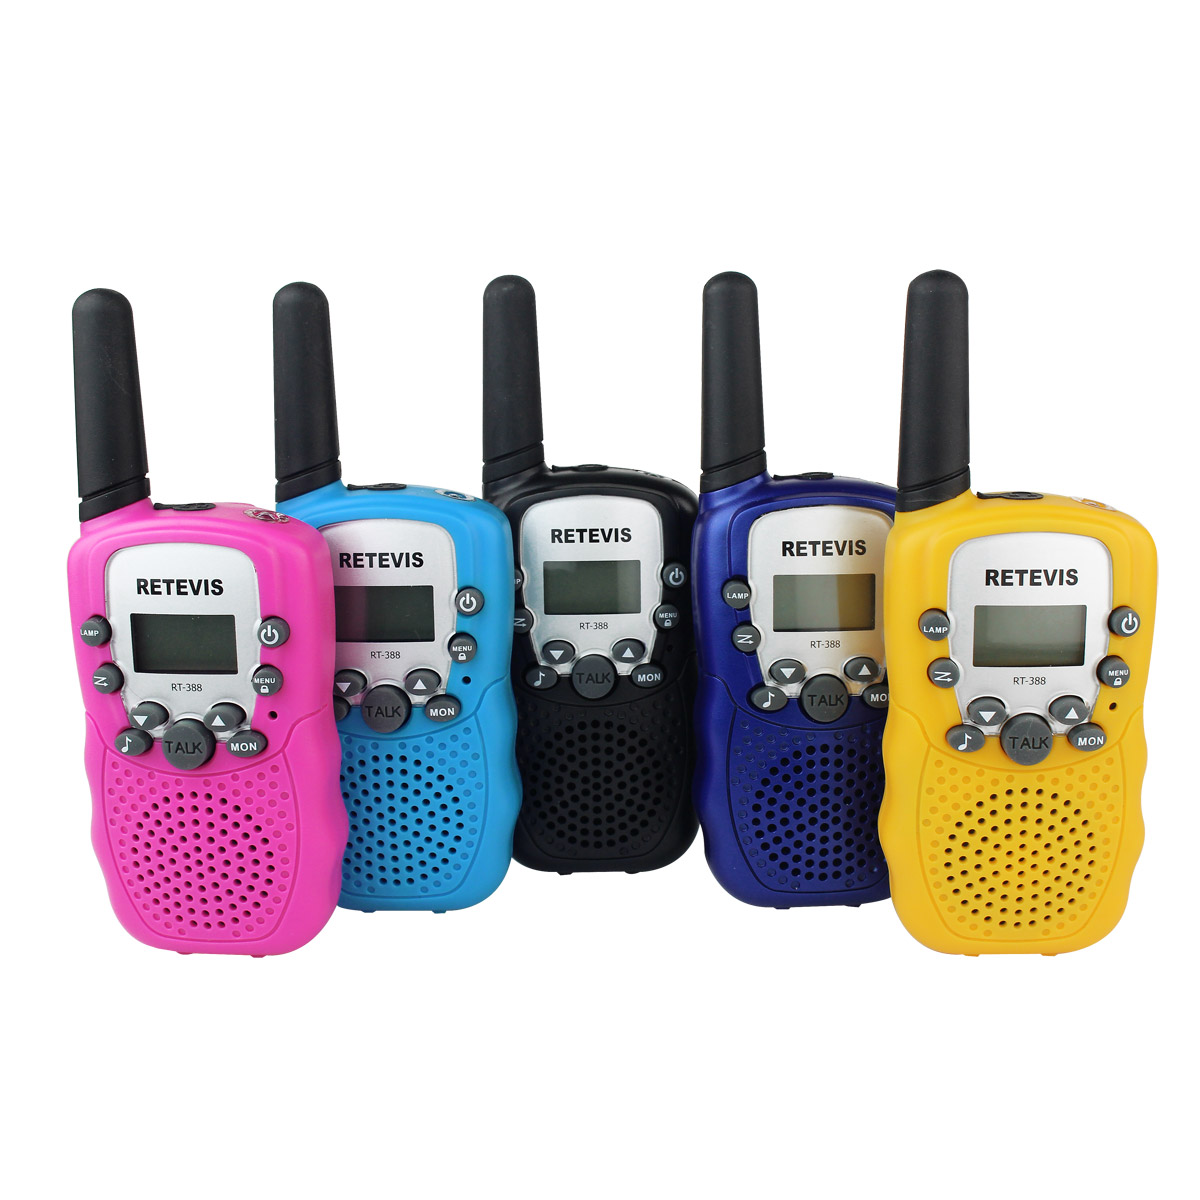 Retevis Kids Walkie Talkie Multi-language Manual Update (5)